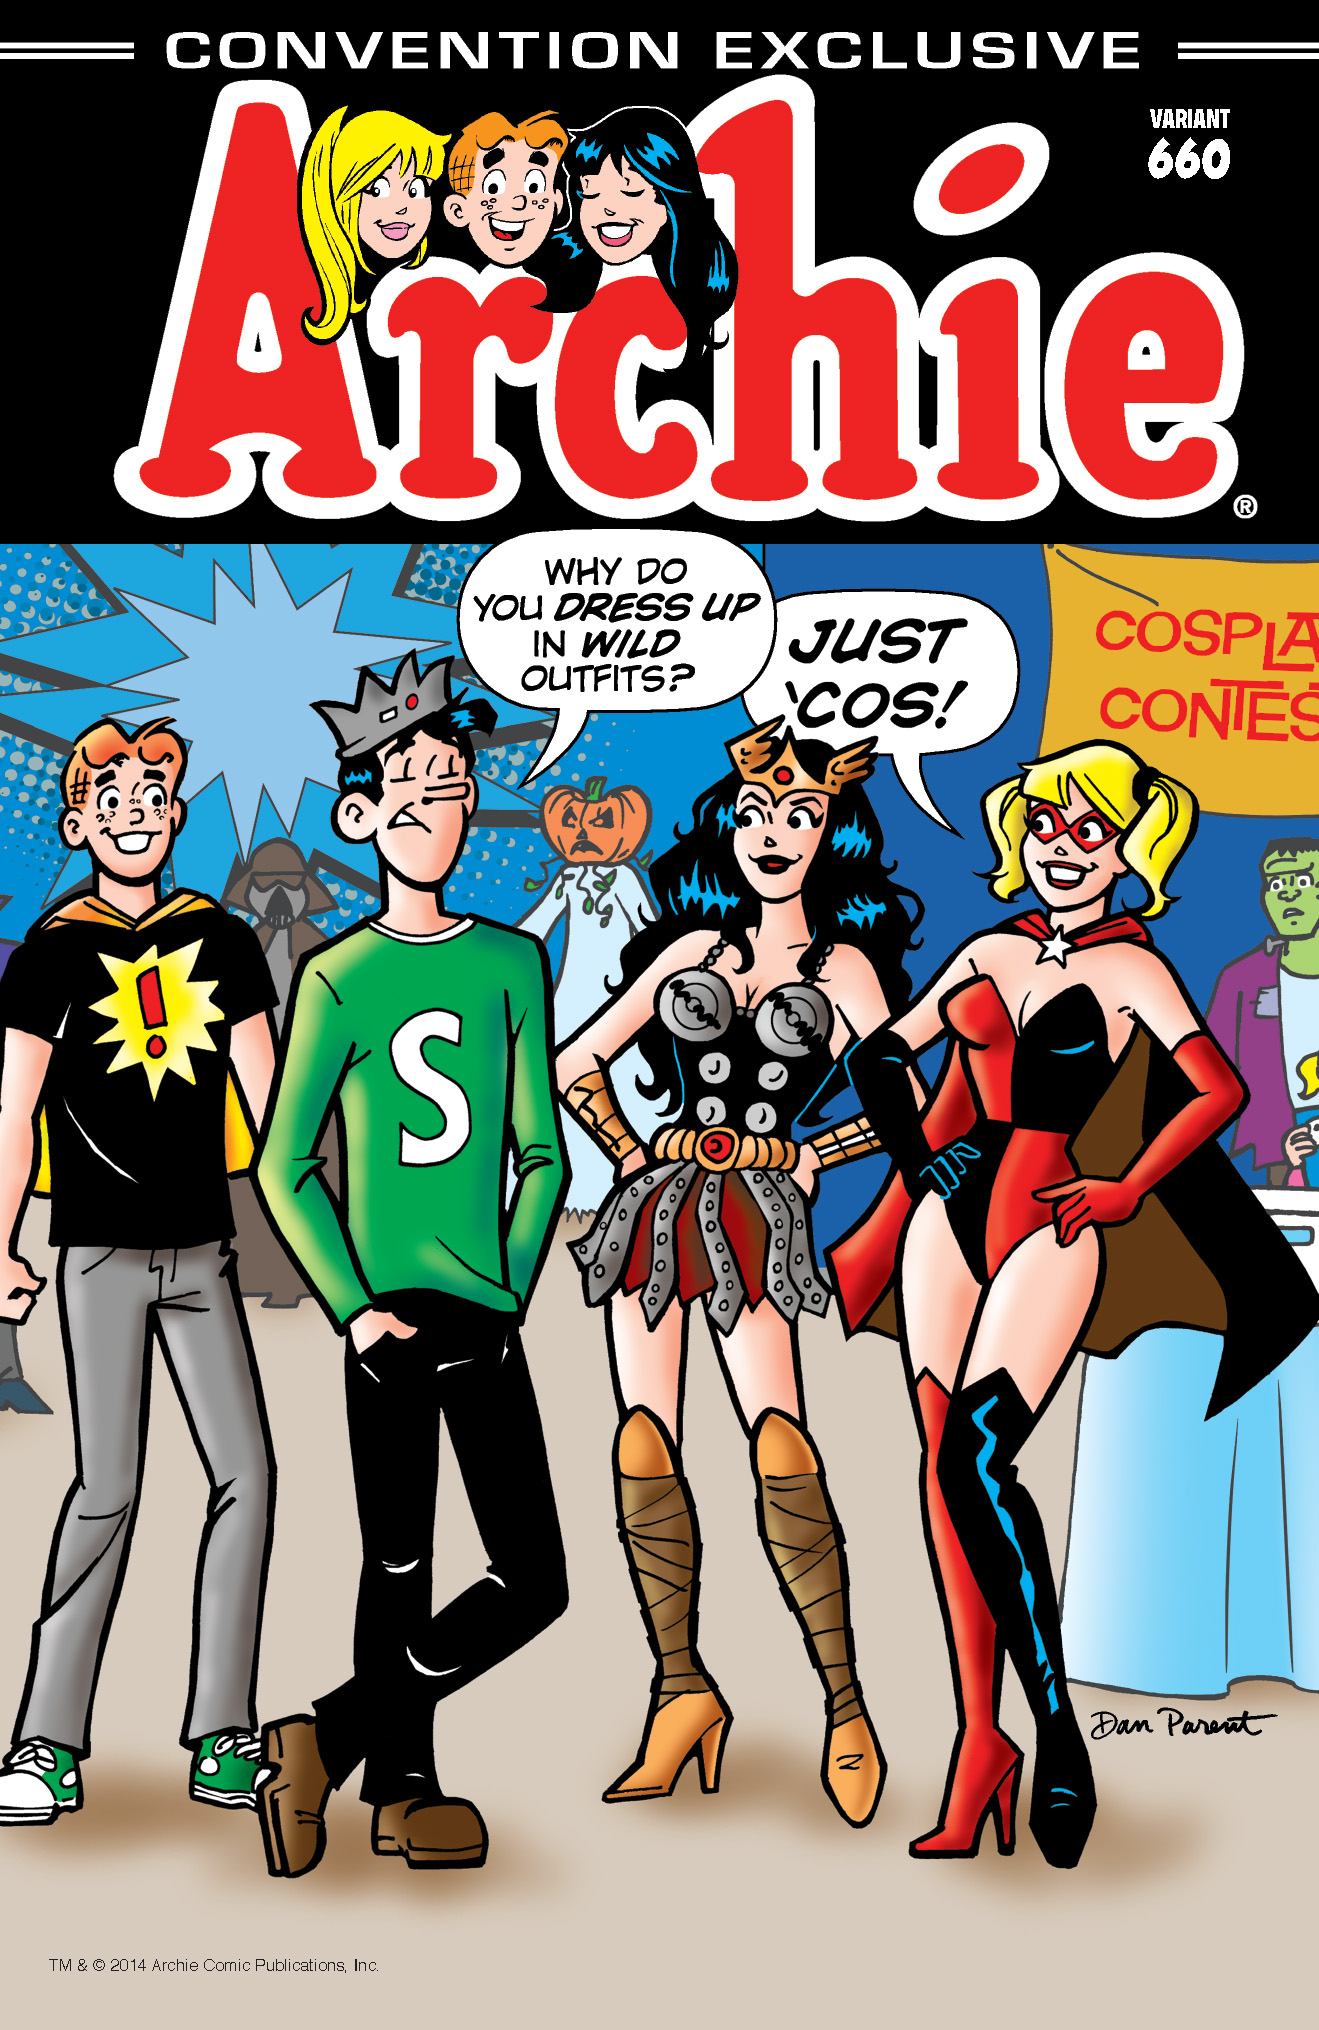 Archie comics archie comics sneak peek of the week major spoilers - Variants Are 10 Each And Supplies Are Limited Archie Comics Signing Schedule Archie Comics Booth 1936